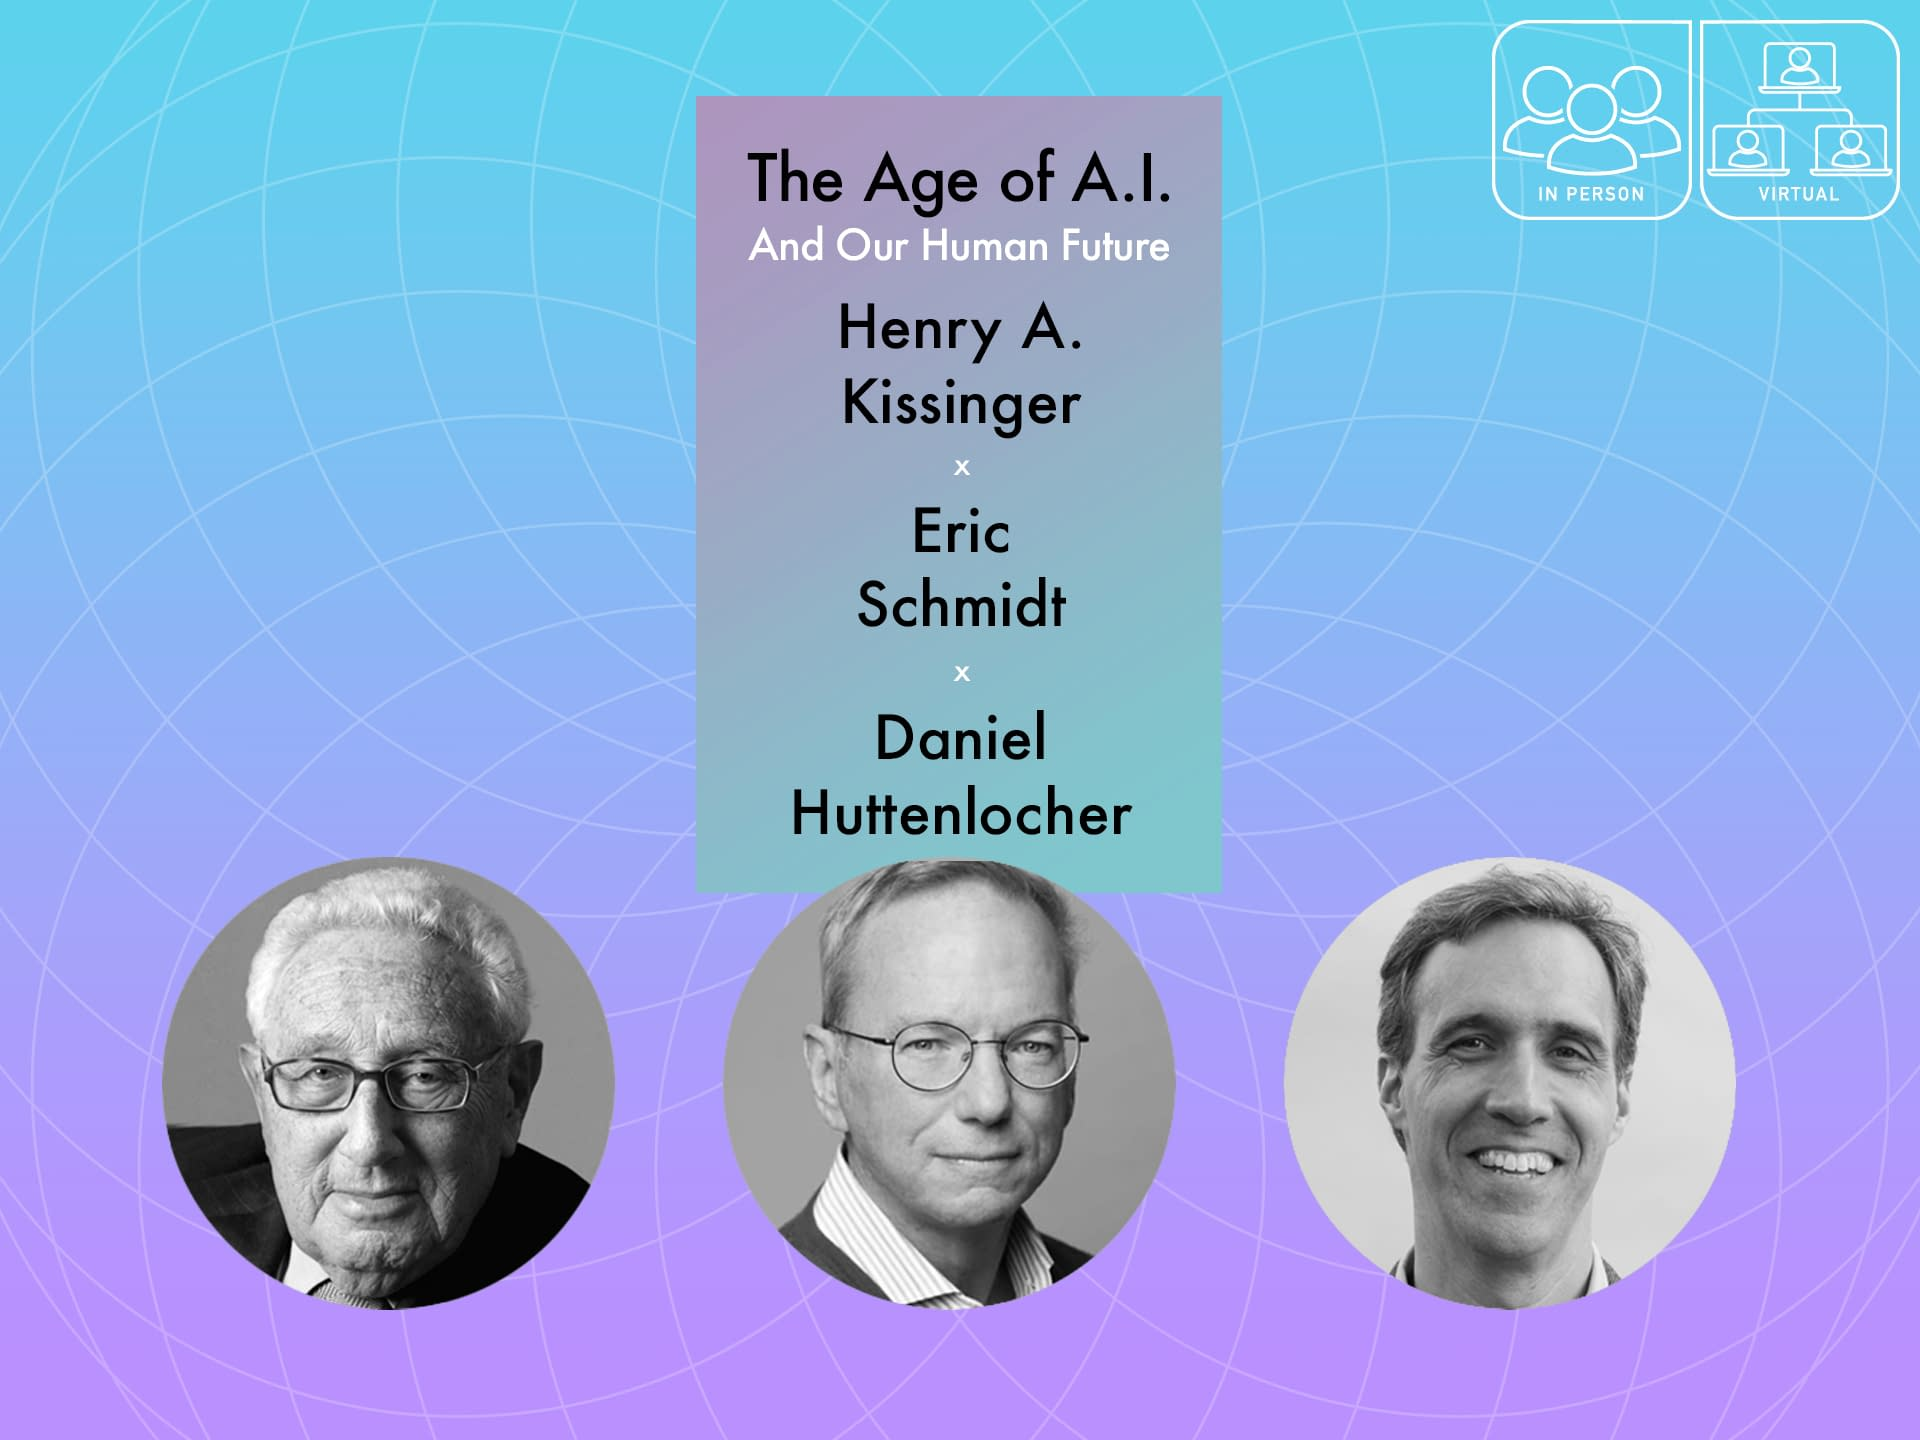 Henry Kissinger, Eric Schmidt and Daniel Huttenlocher: THE AGE OF A.I. 3 - - author